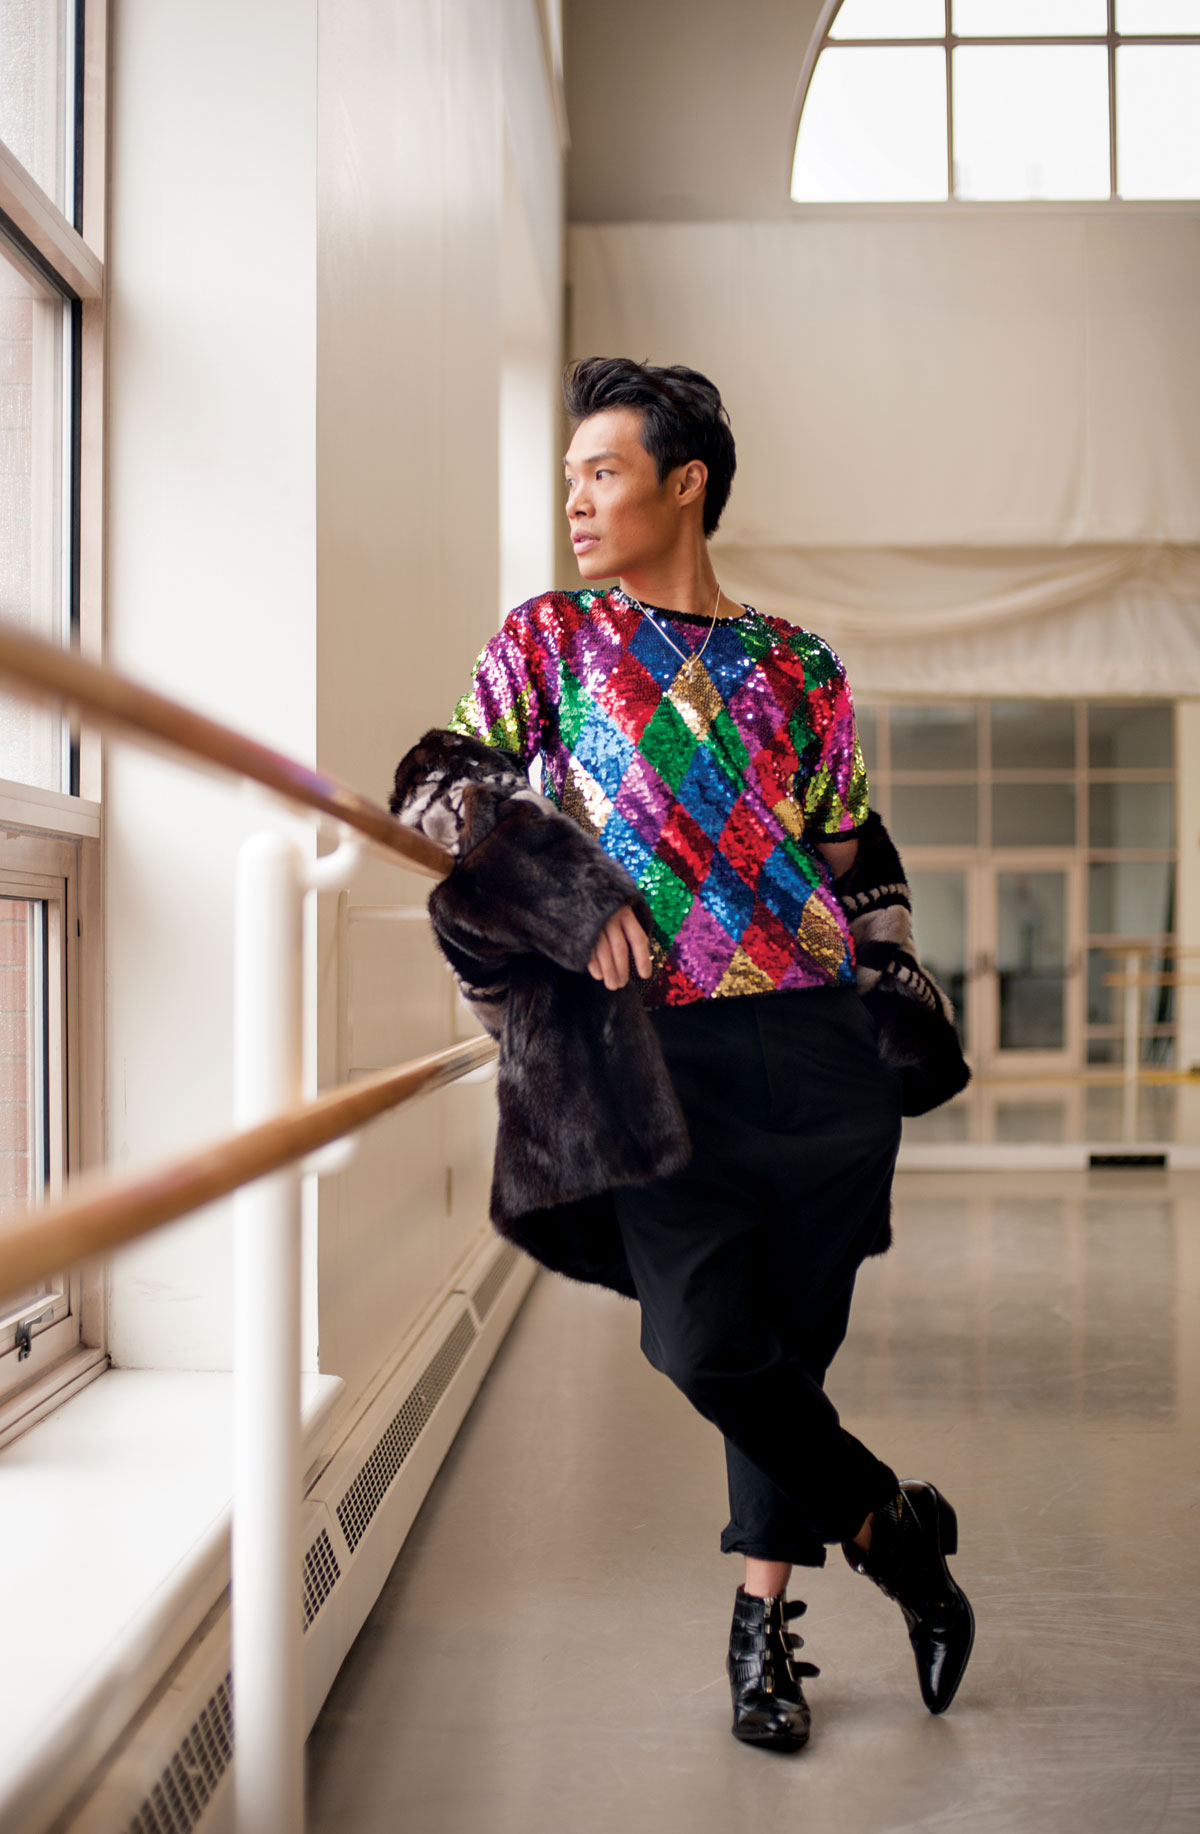 Boston Ballet Soloist Jam Lam